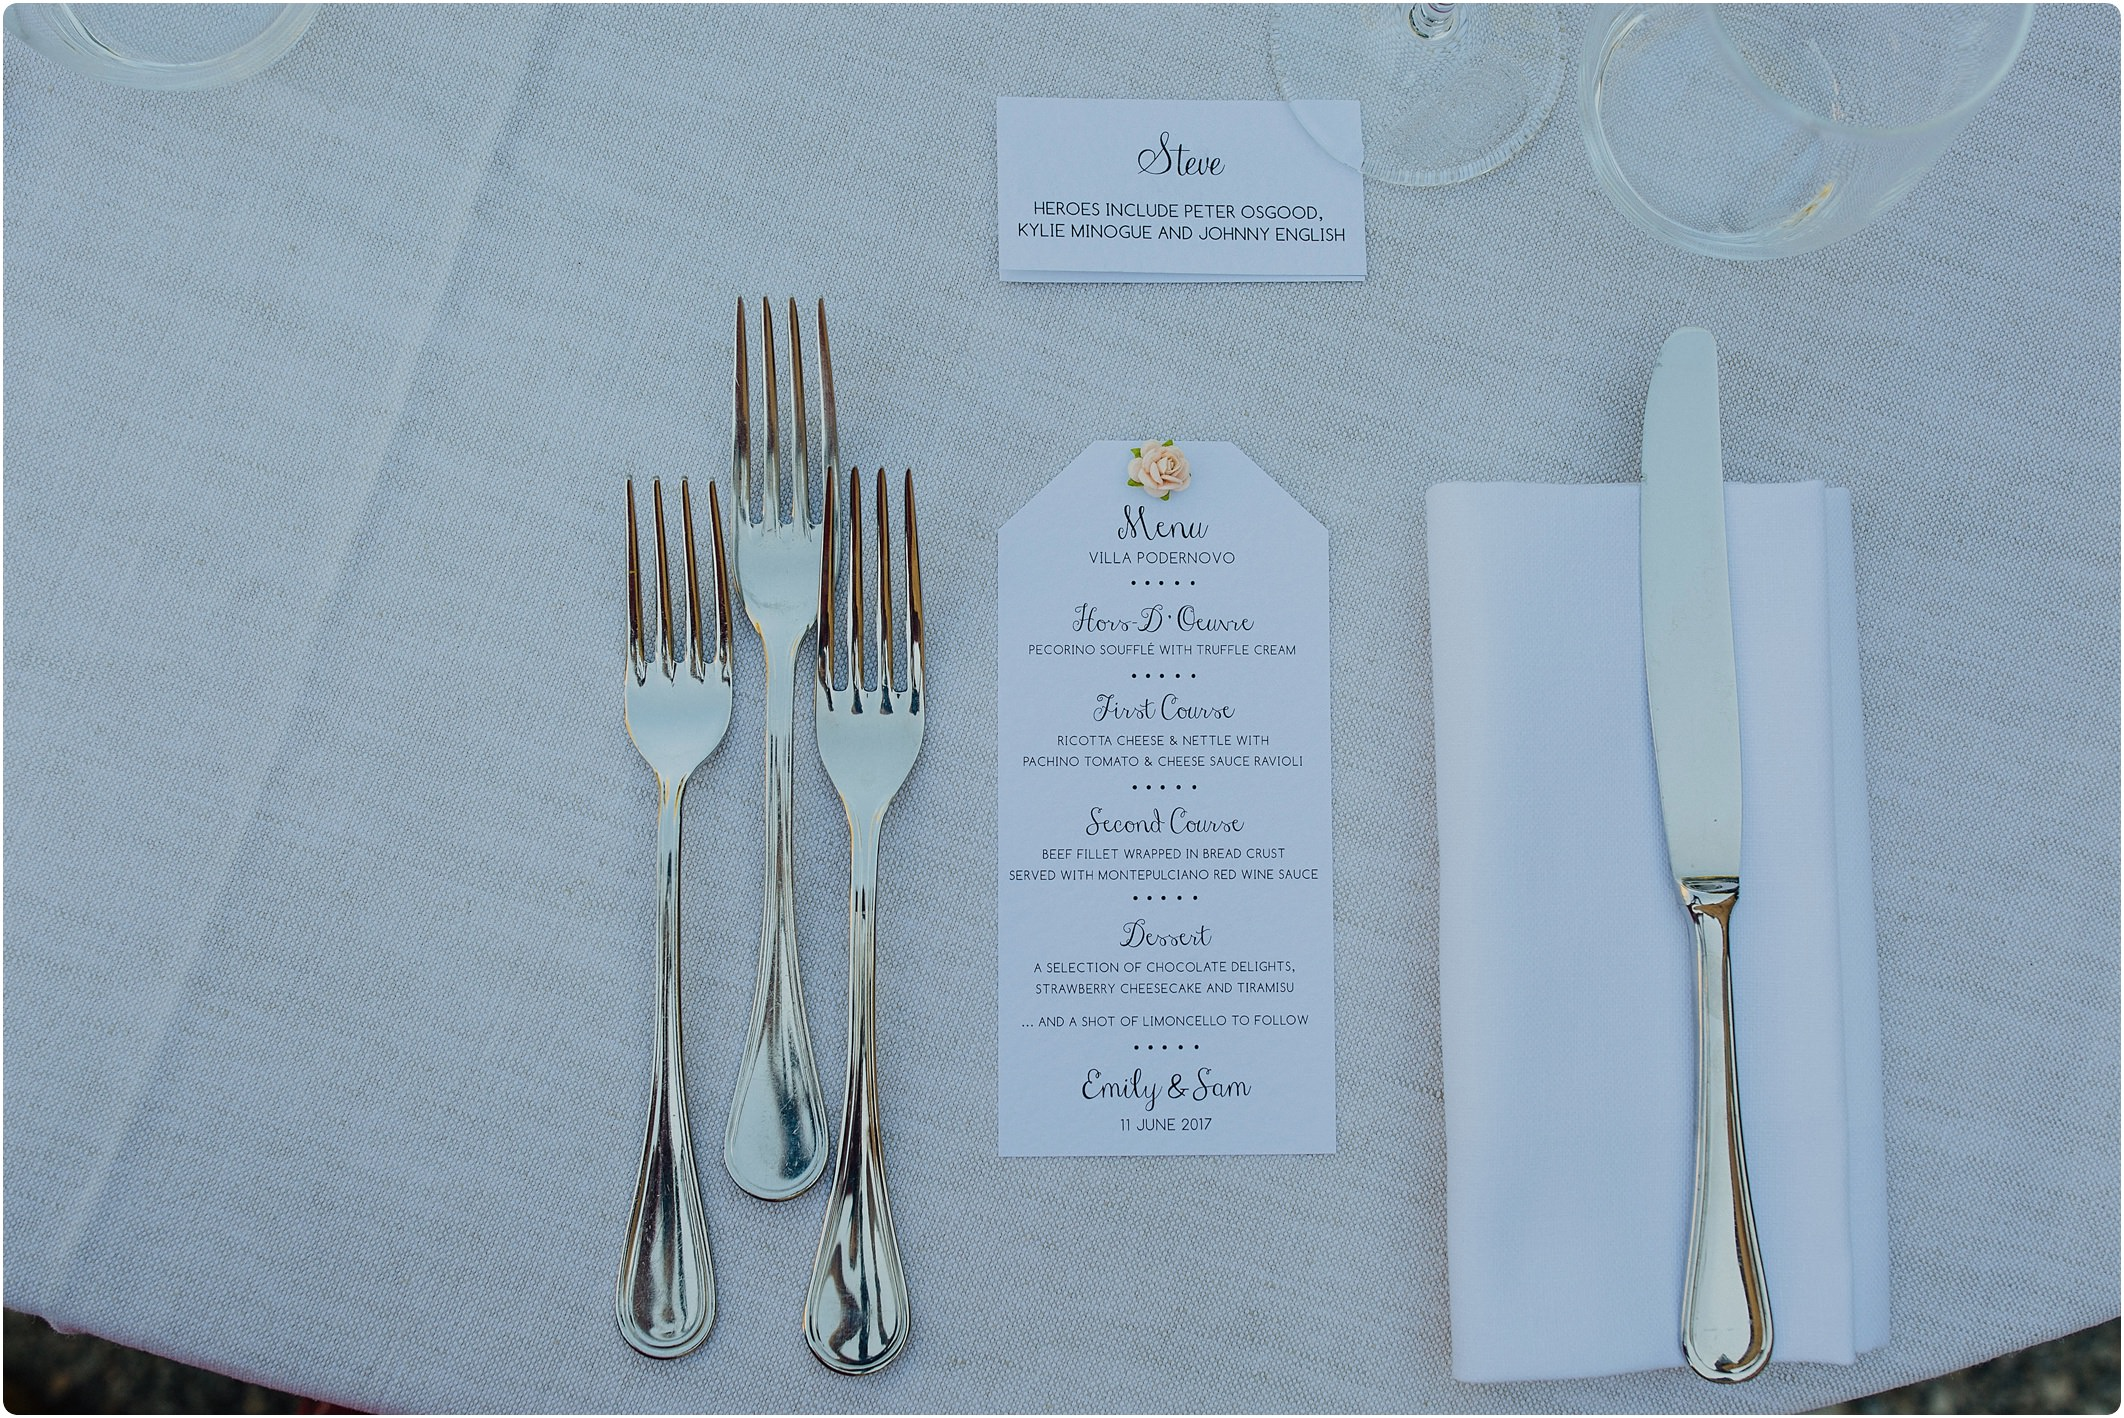 menu at a villa podernovo wedding